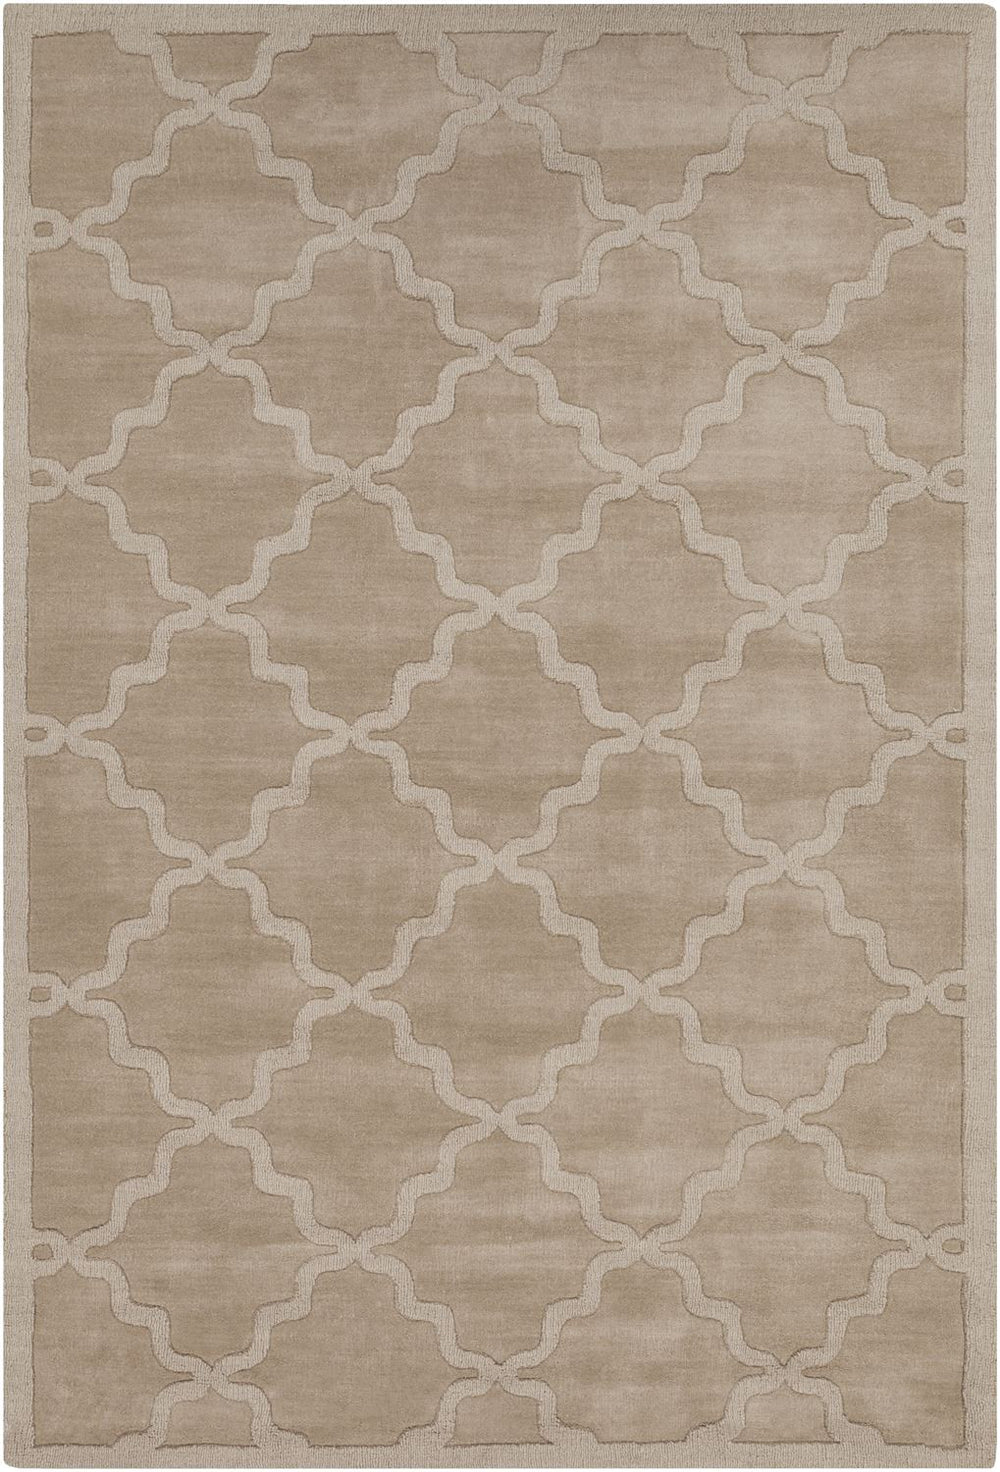 Artistic Weavers Central Park Abbey AWHP4020 Area Rug